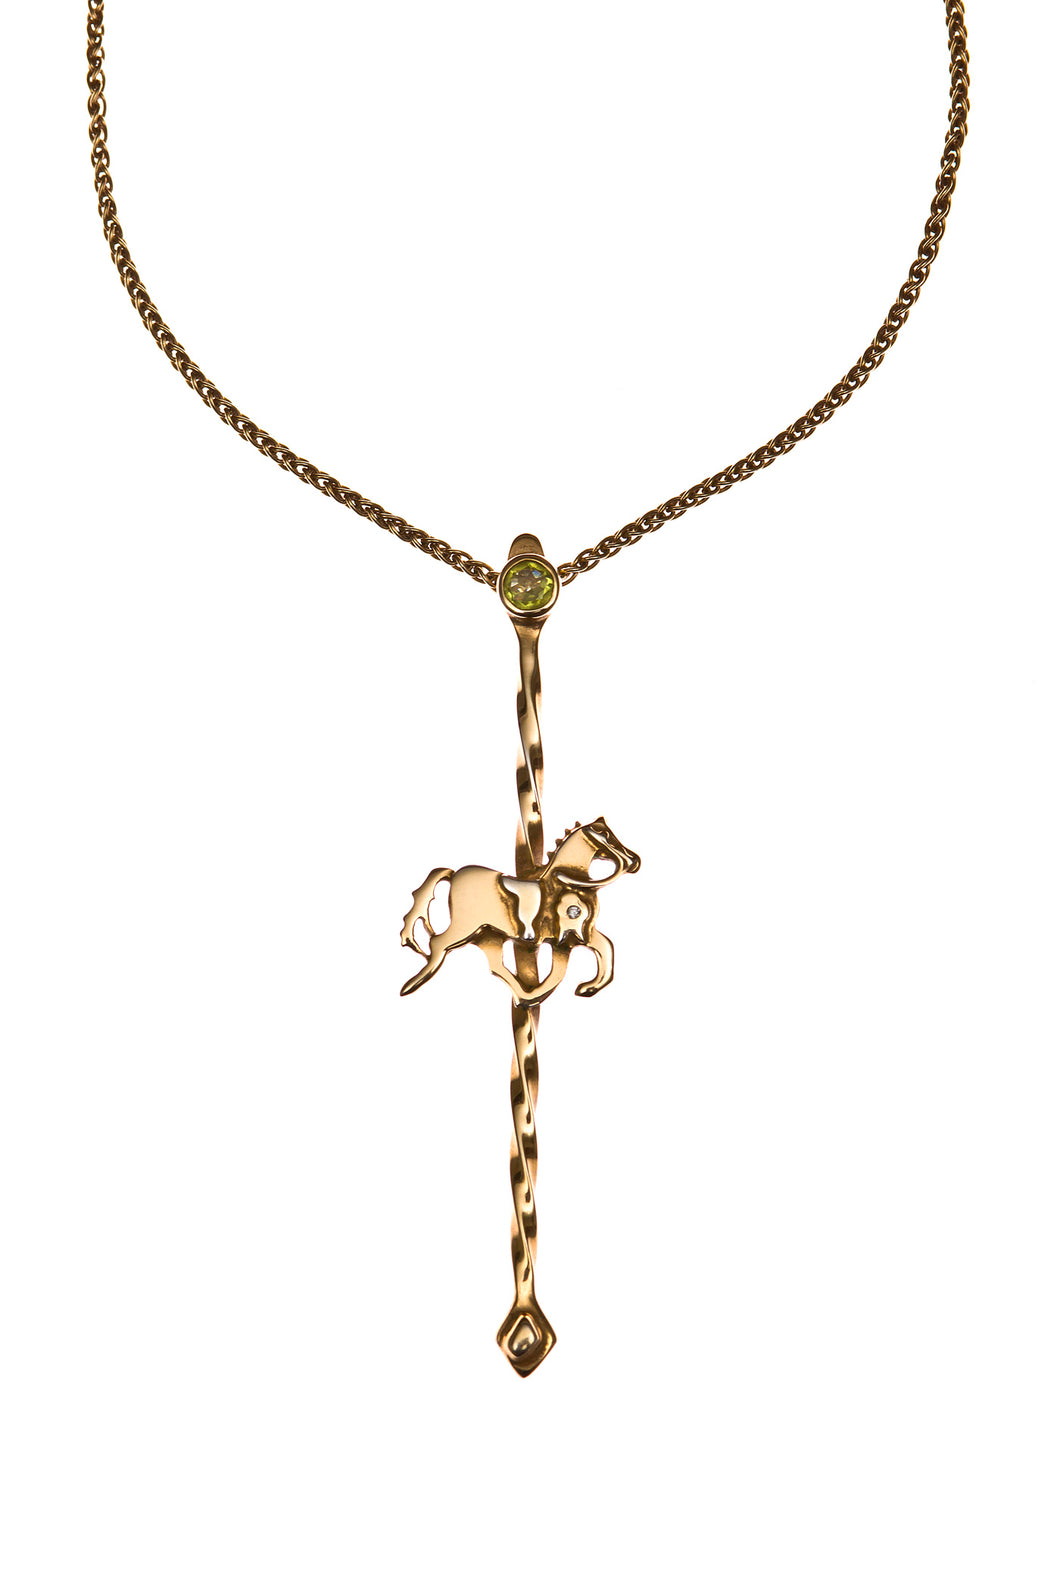 Carousel Necklace (30% off SILVER necklace at checkout)